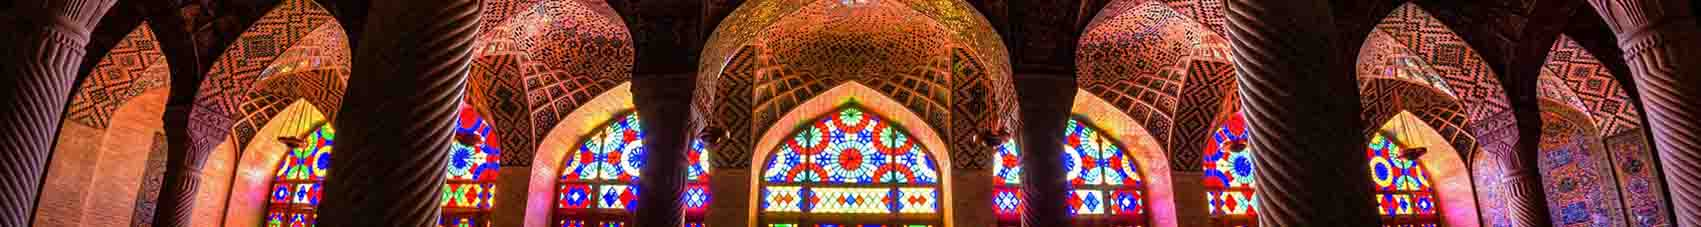 pink mosque-Shiraz, Nasir-al Molk Mosque-Shiraz